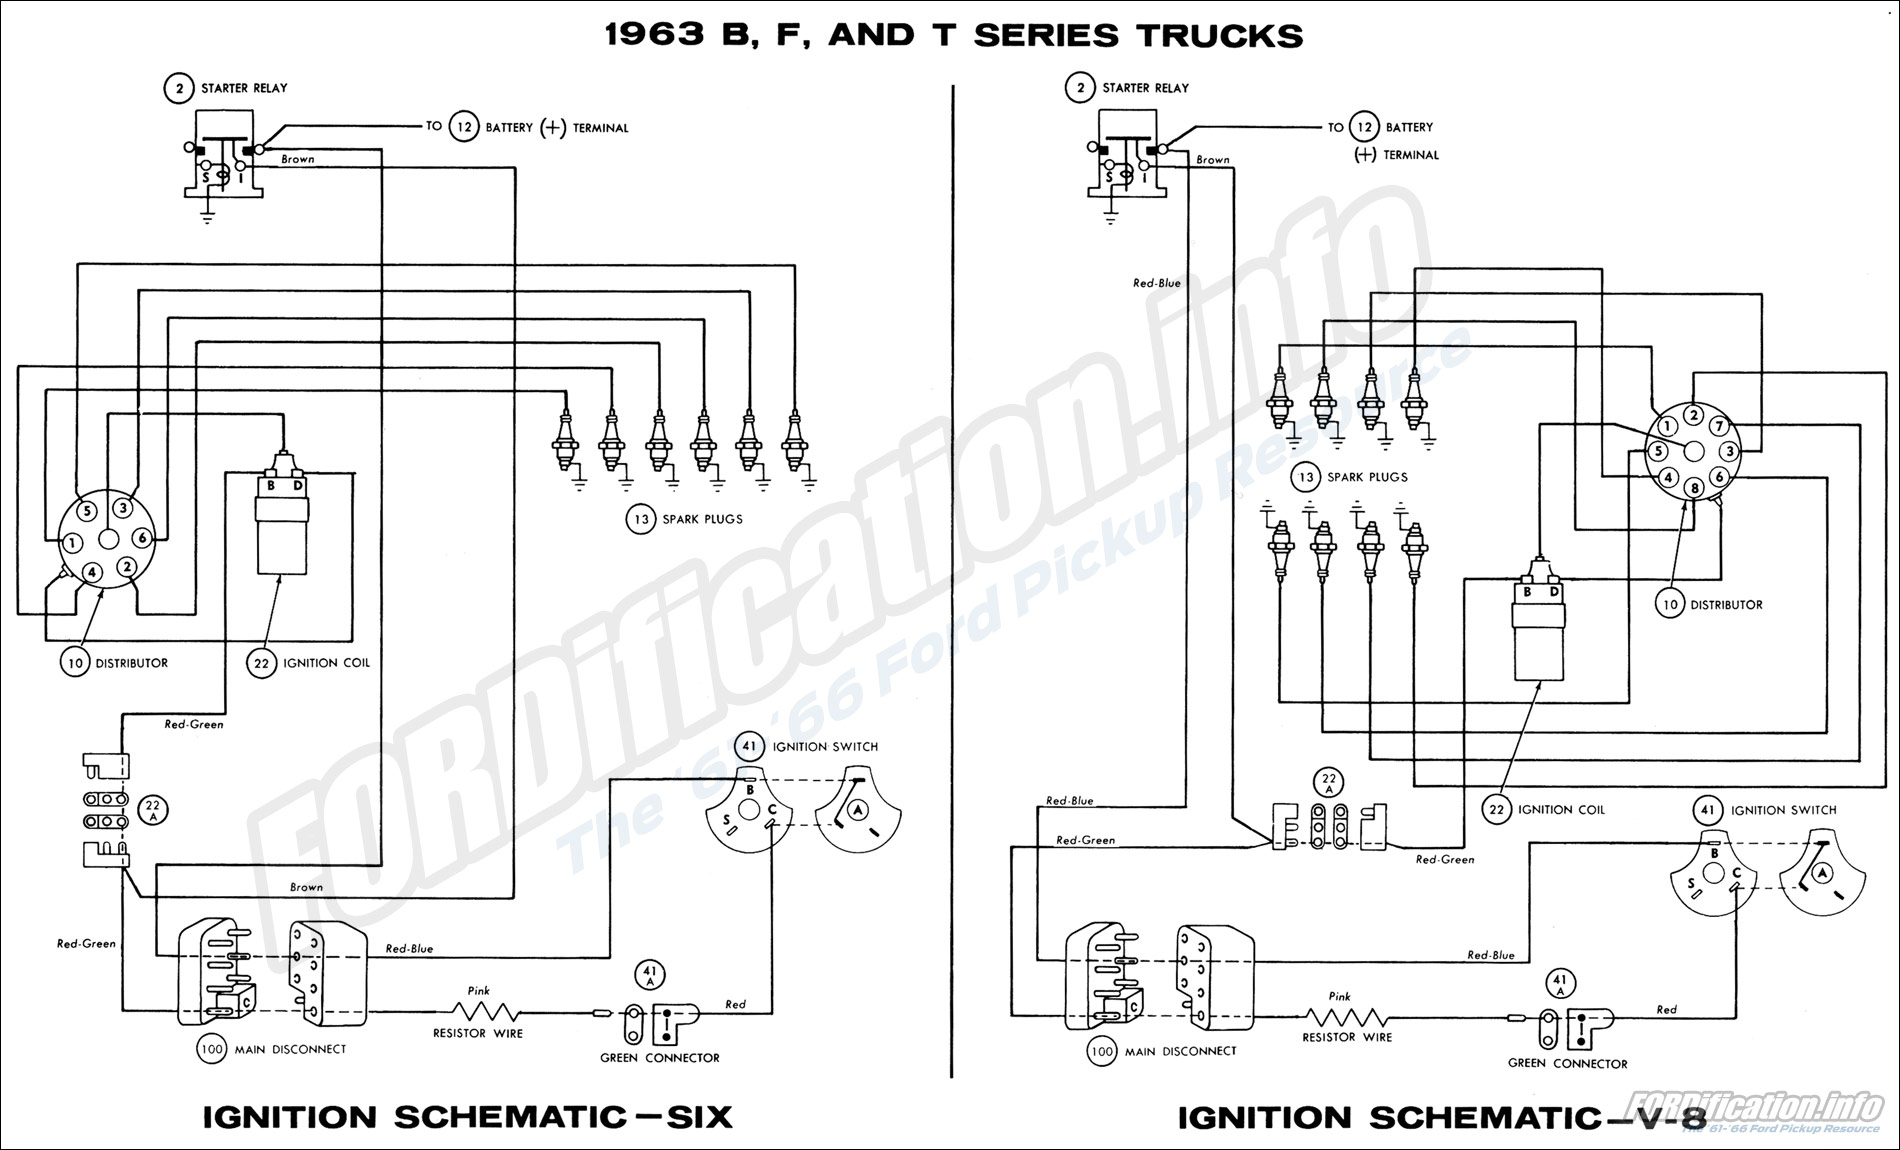 hight resolution of 1963 b f and t series trucks ignition schematics six and v8